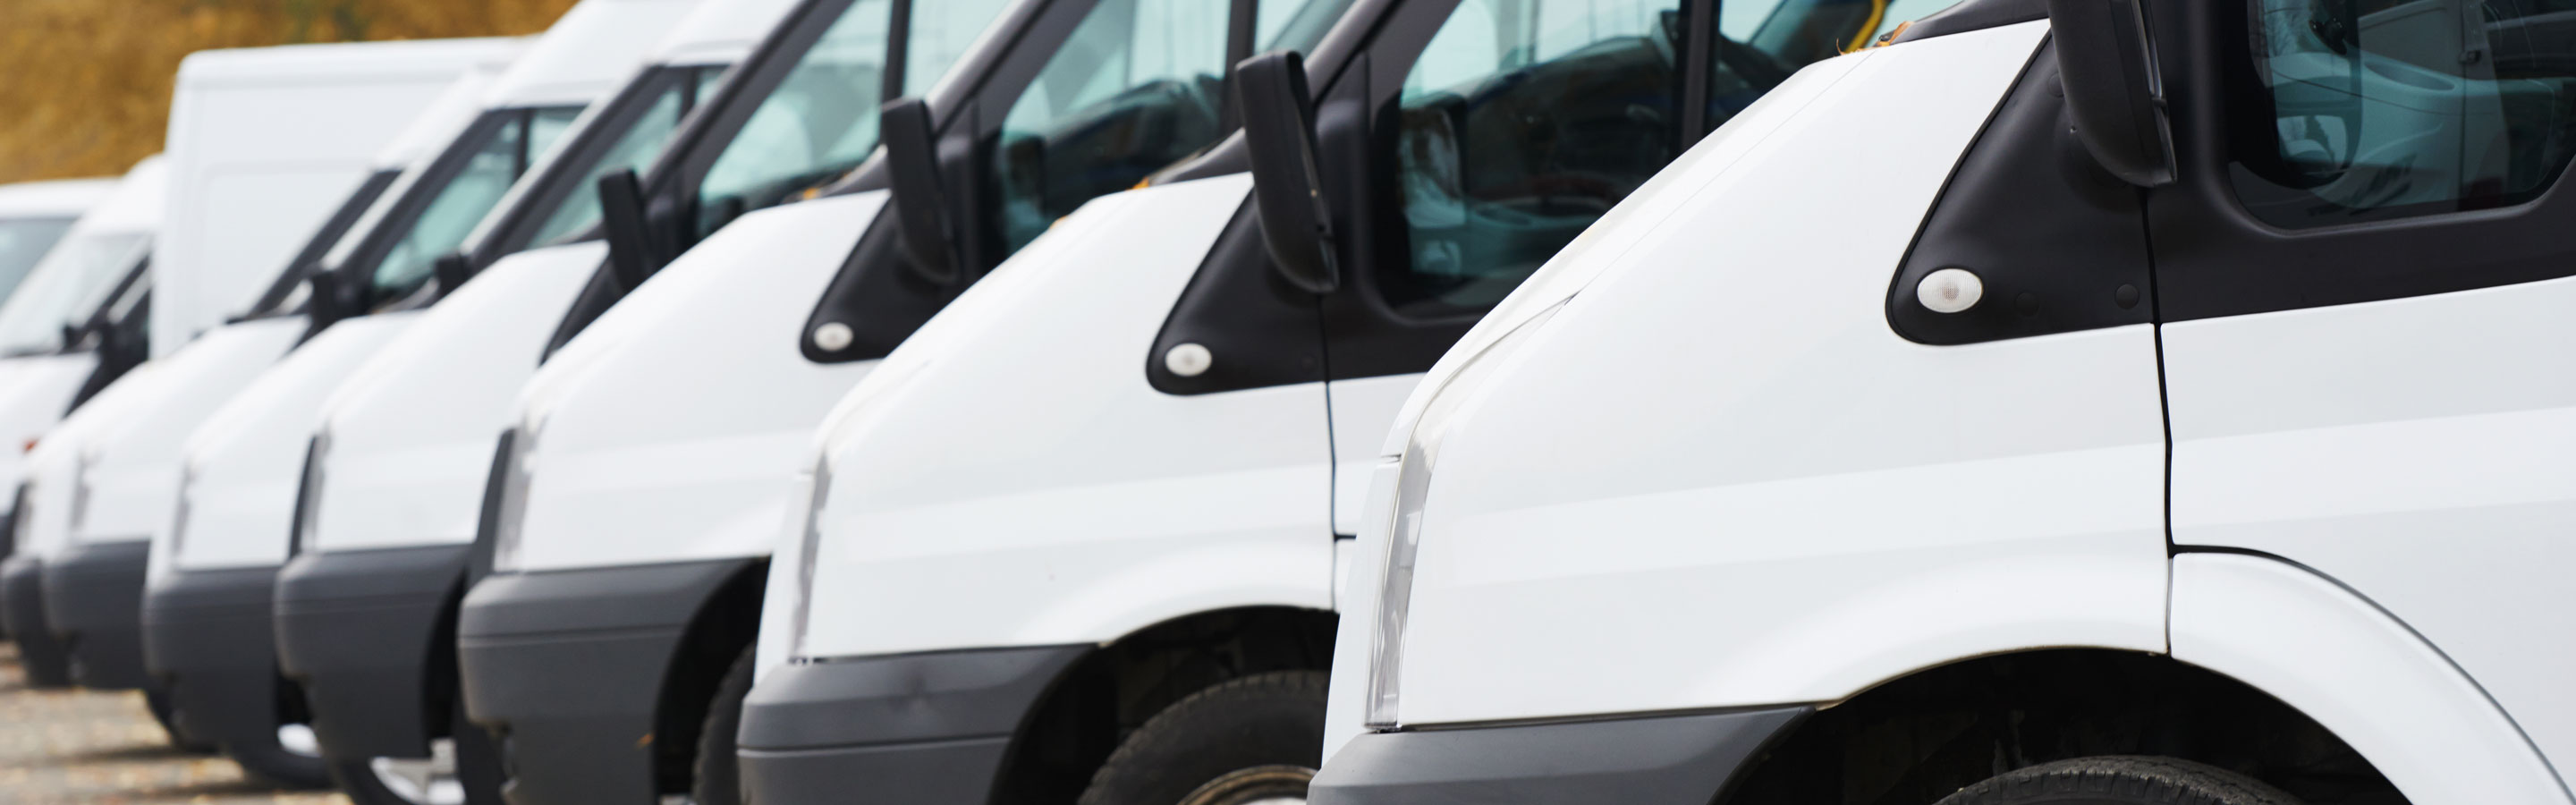 Commercial Vehicle Insurance, Reno, NV